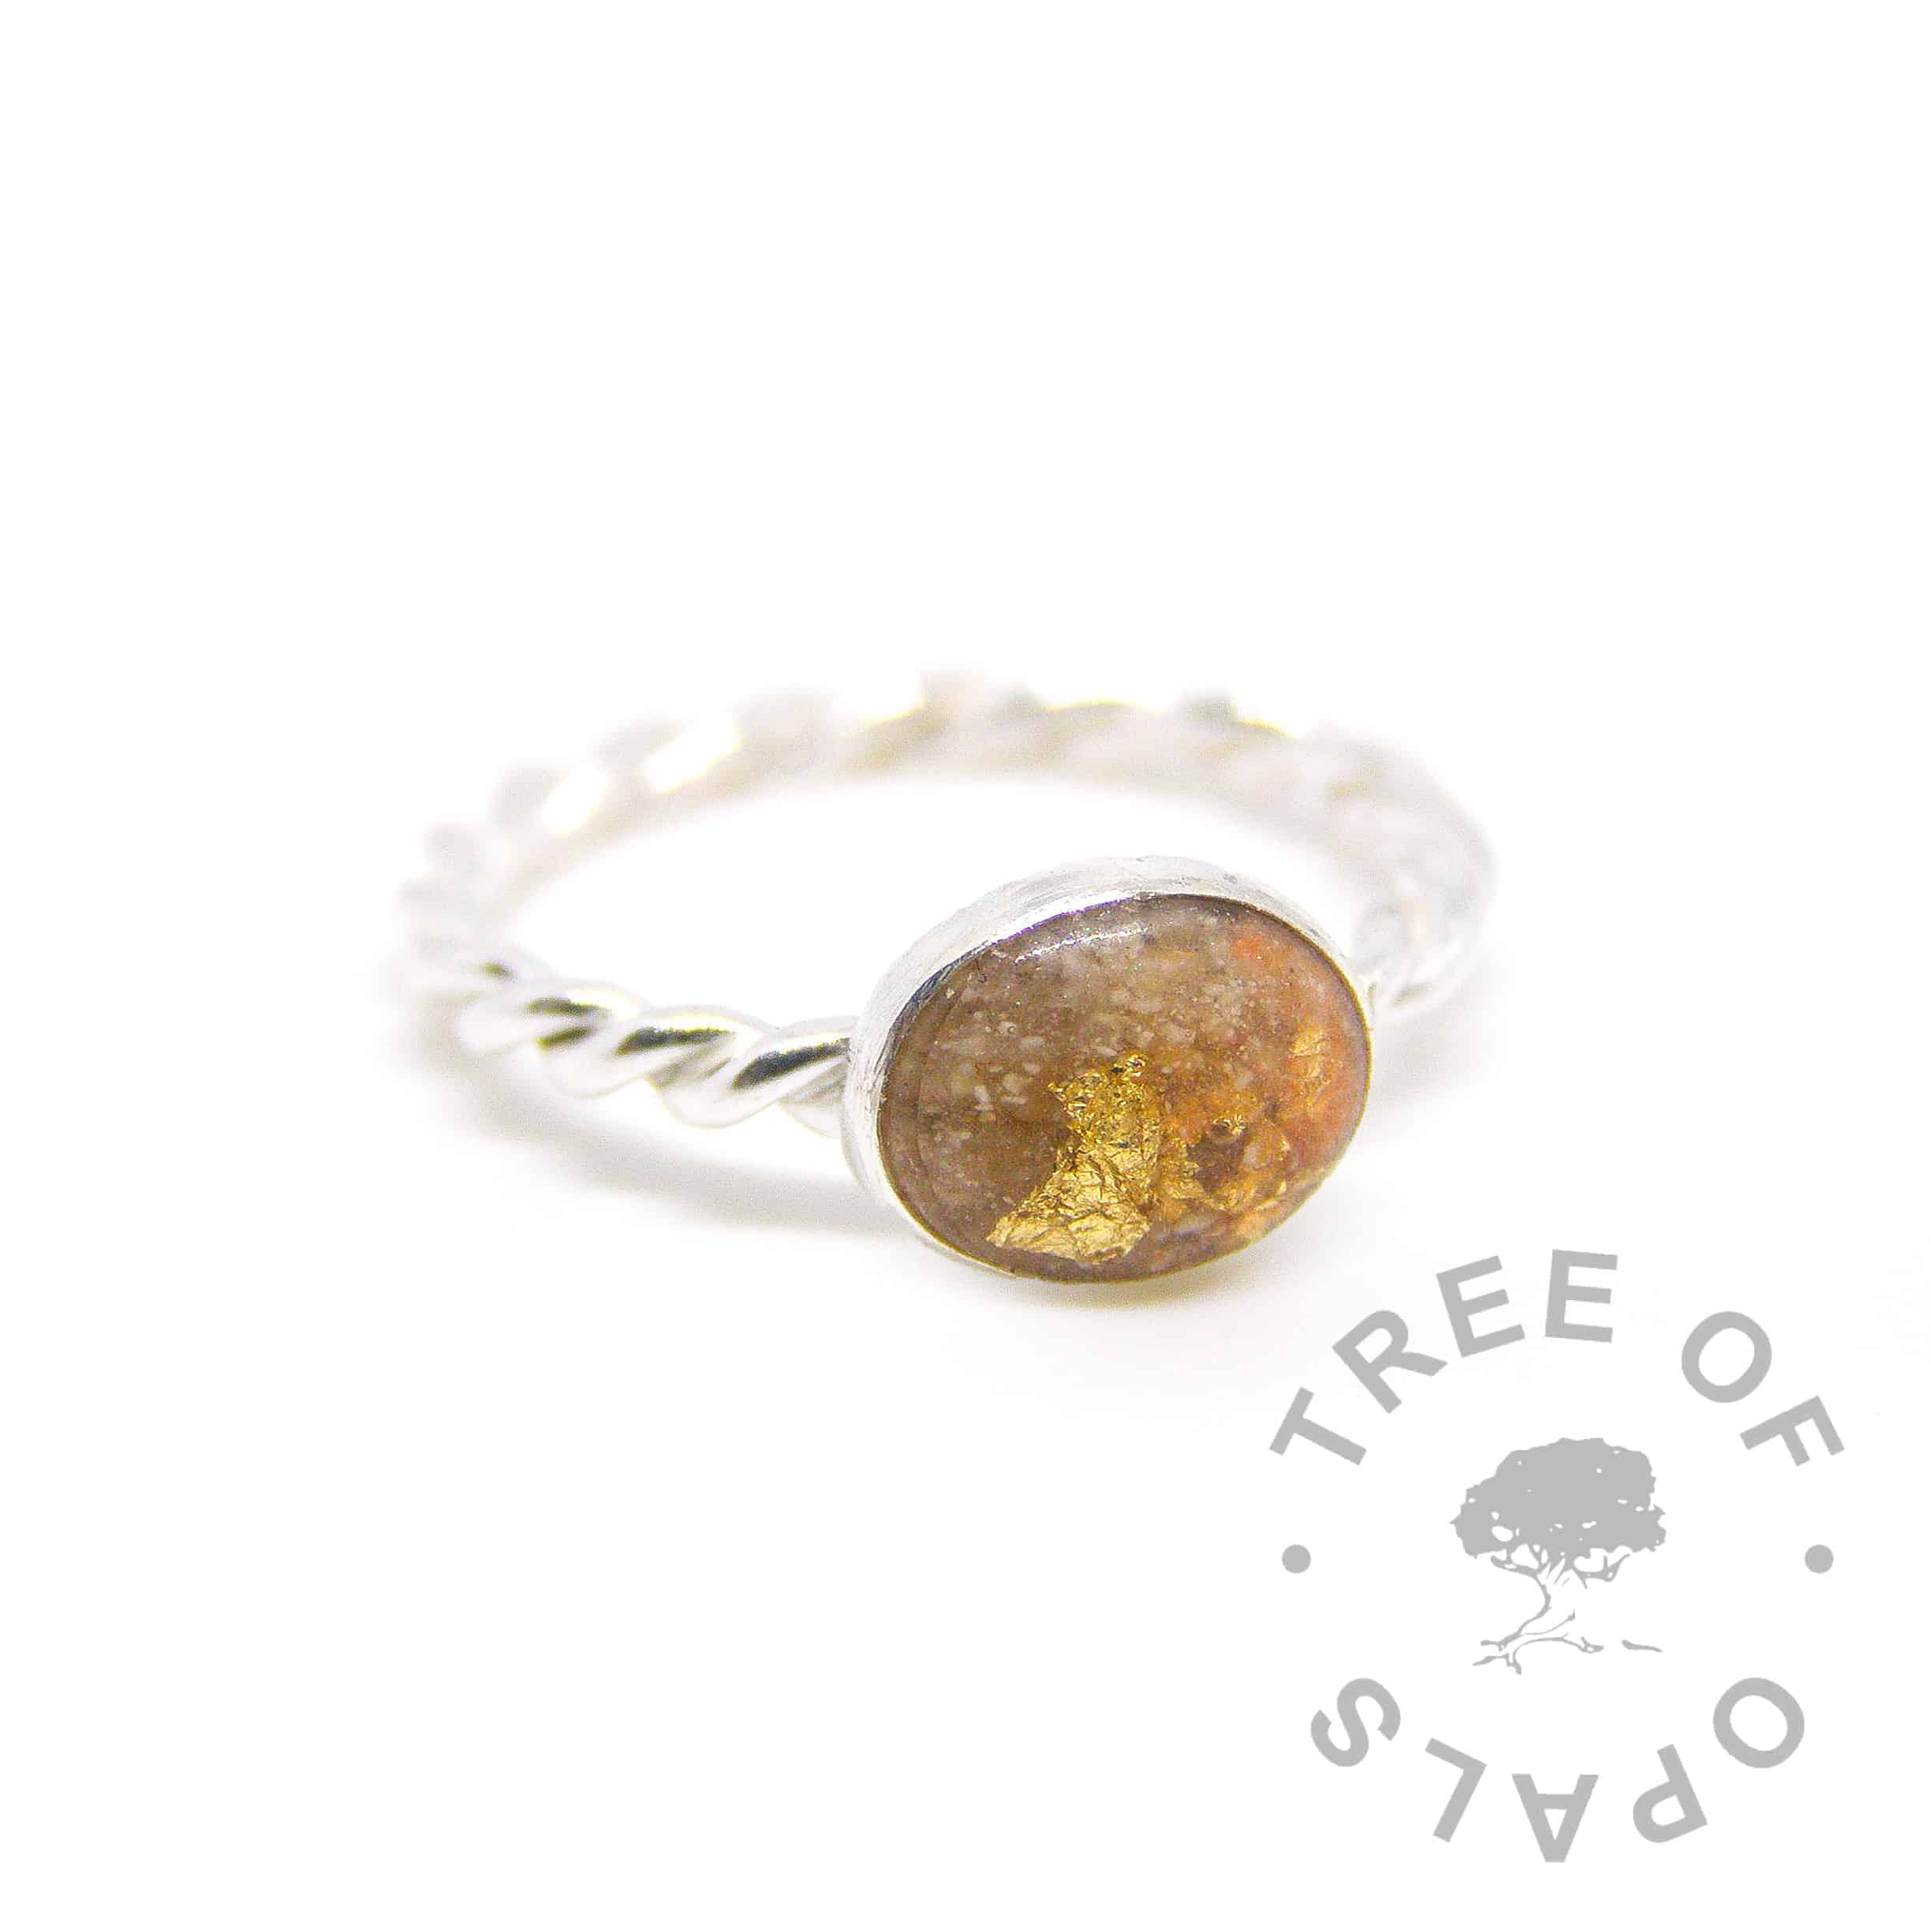 cremation ash ring with yellow topaz December birthstone with tangerine orange shimmer. On a twisted band